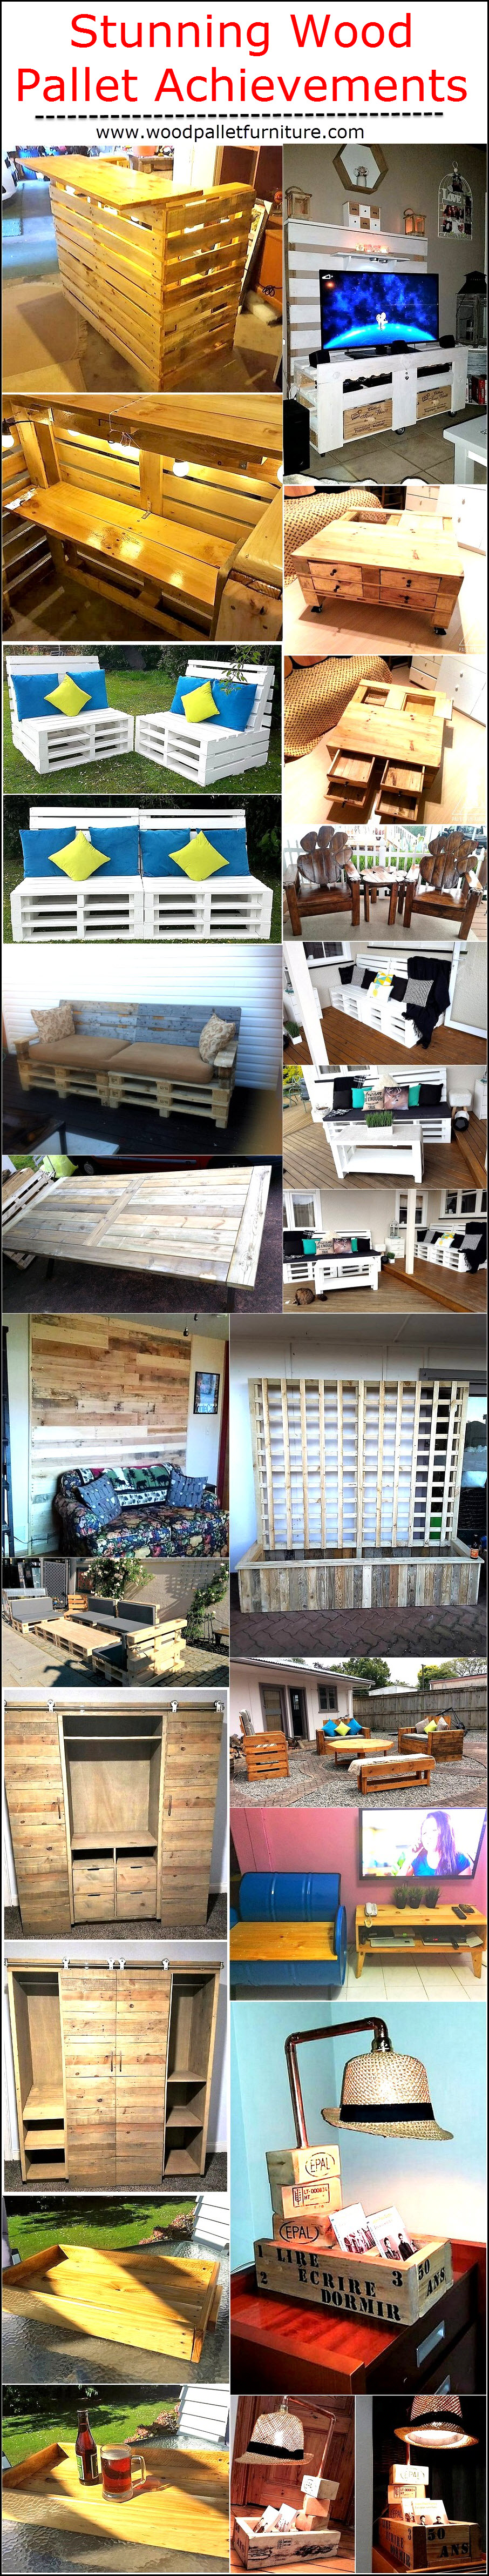 stunning-wood-pallet-achievements